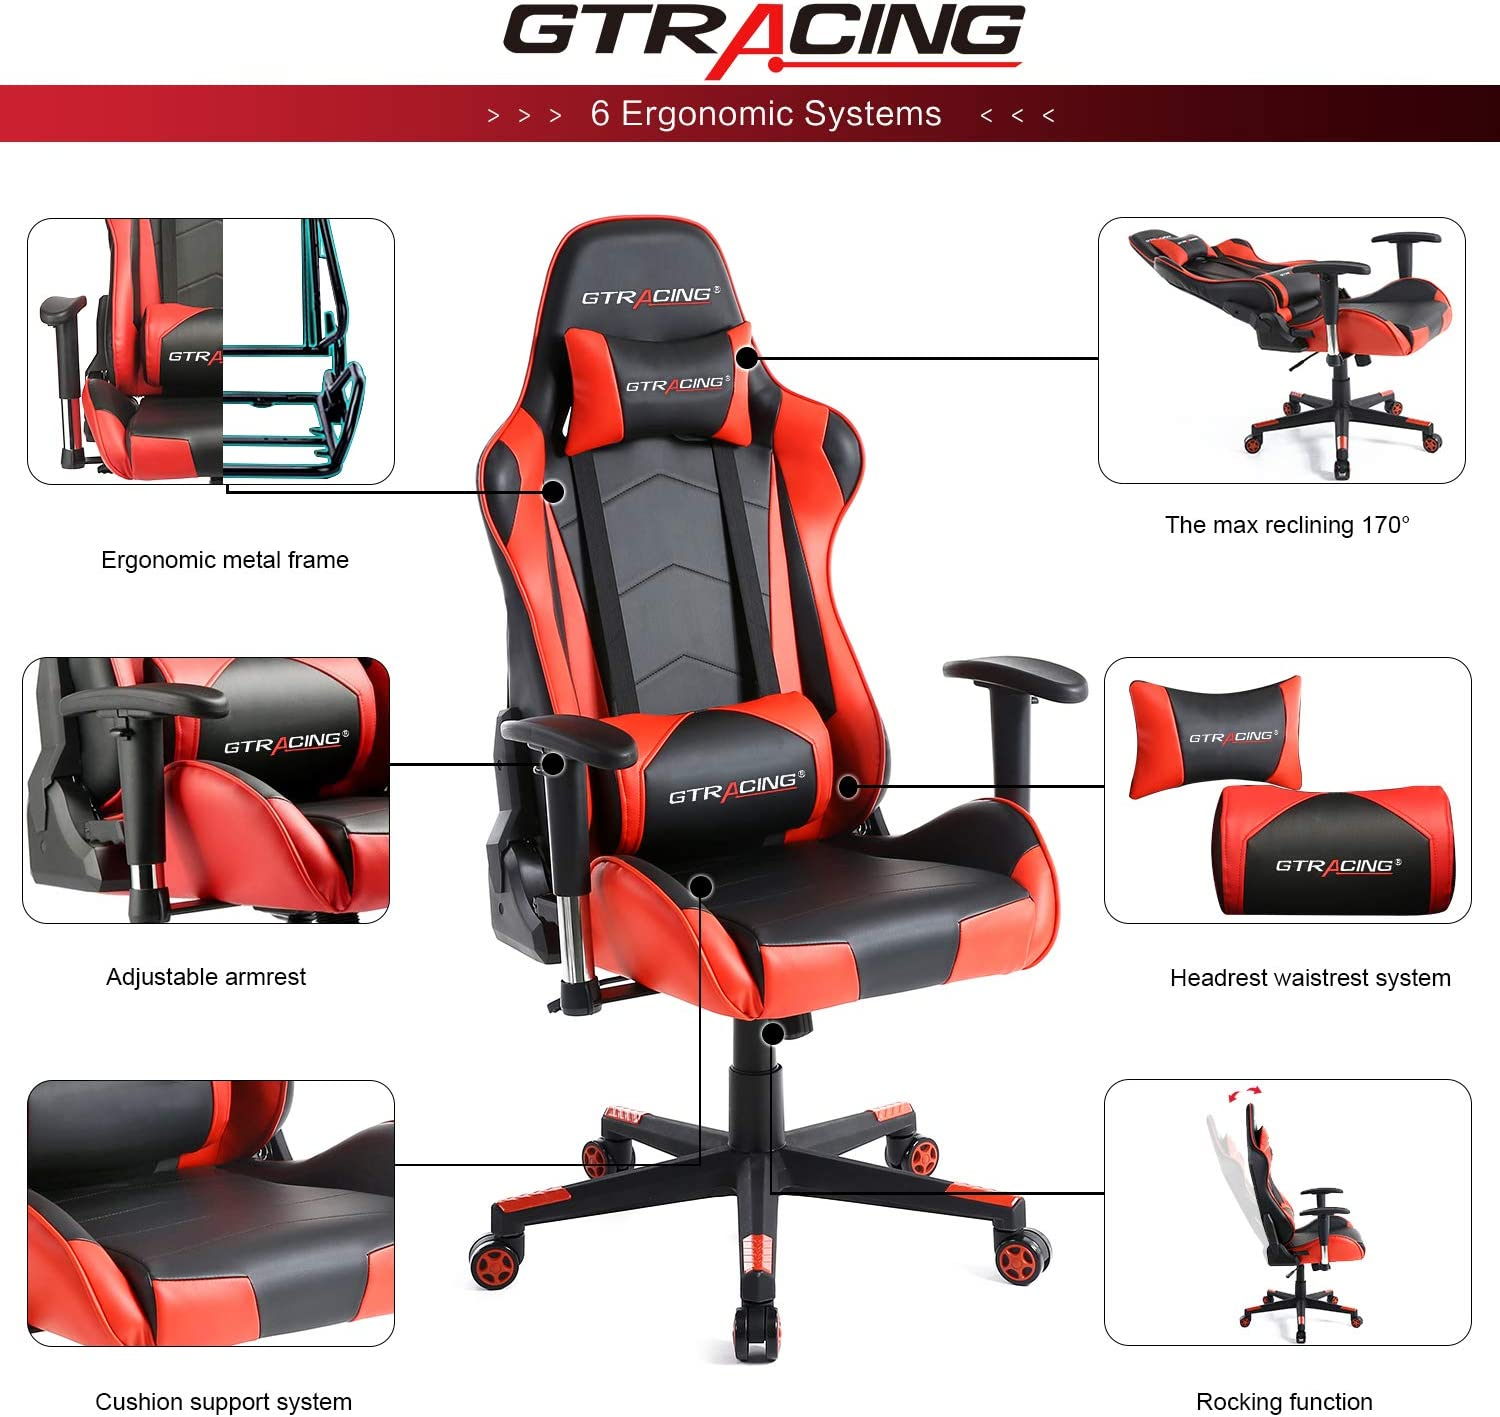 71%2BKwbsDIsL. AC SL1500 - What Is The Best Gaming Chair For Short Person - ChairPicks